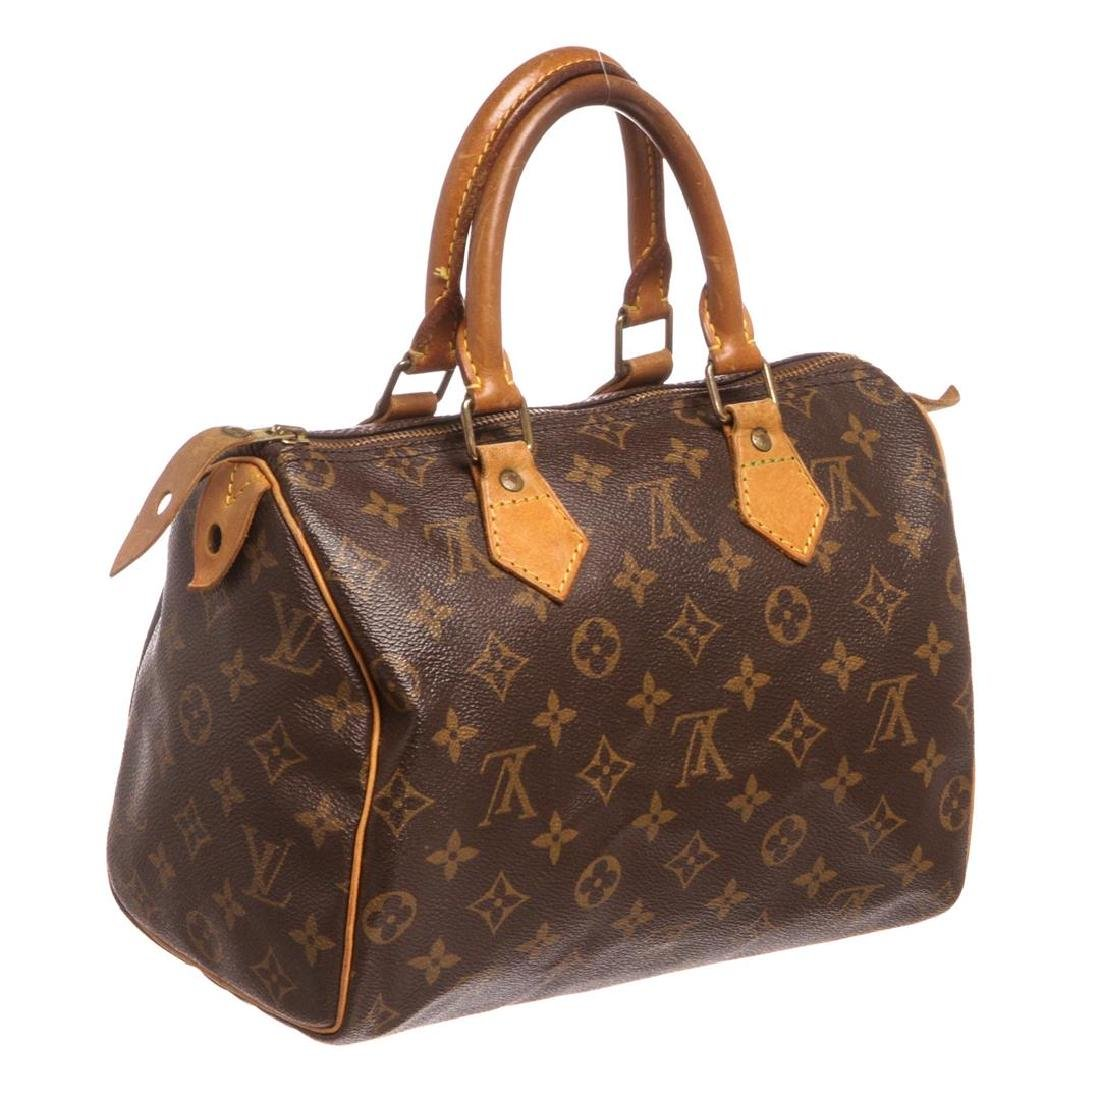 Louis Vuitton Monogram Canvas Leather Speedy 25 cm Bag - 3